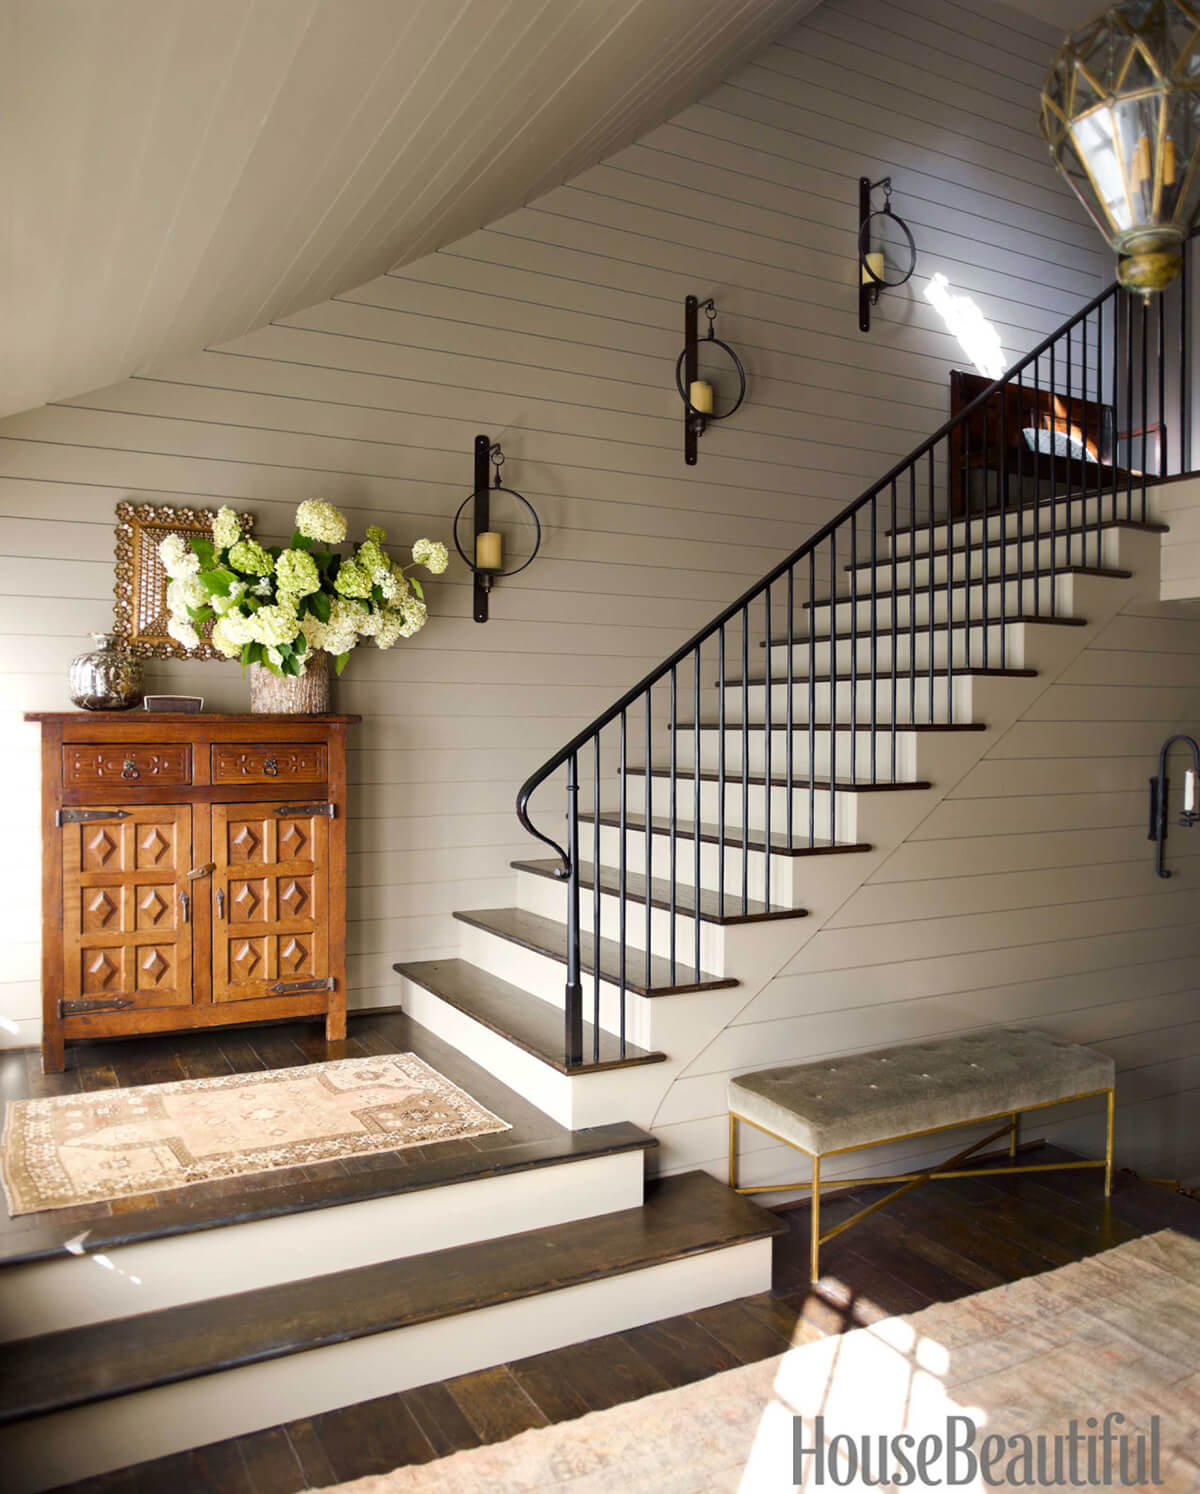 Interior Staircase Ideas 28 Best Stairway Decorating Ideas And Designs For 2019